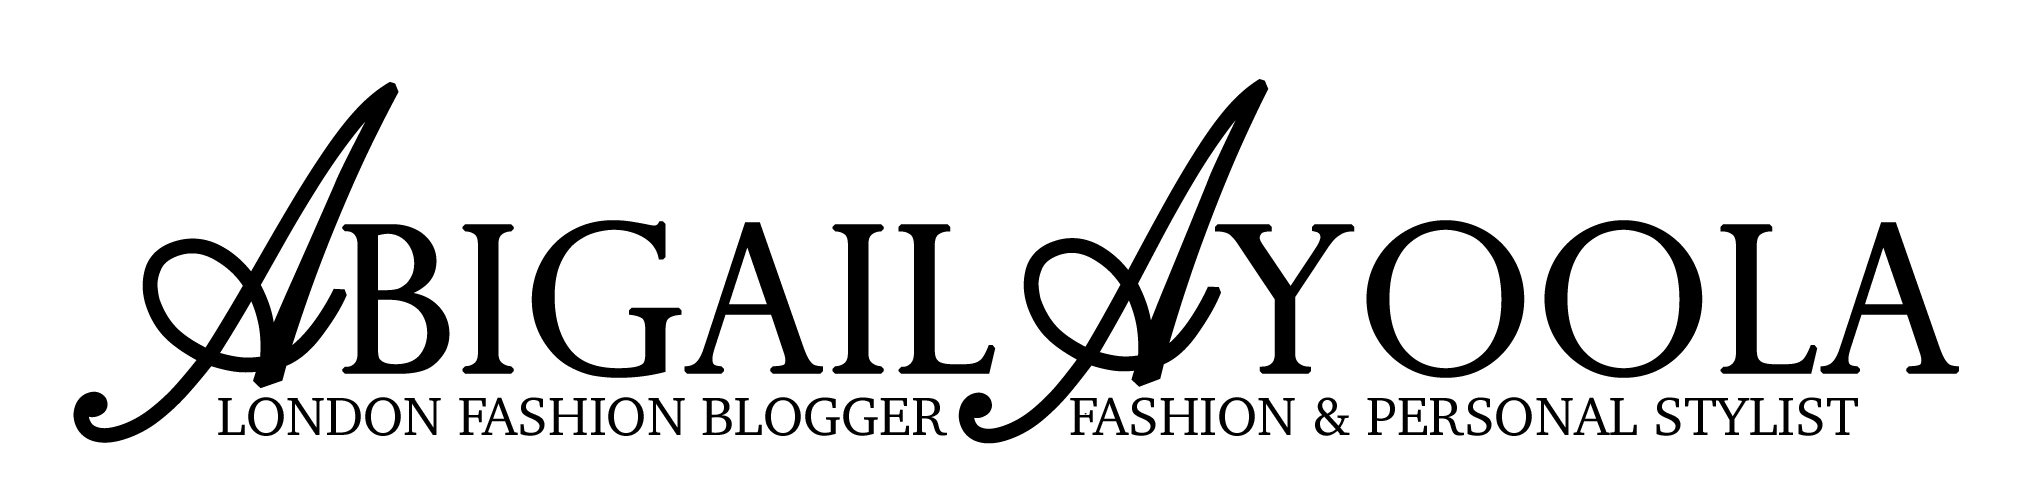 Stylist & Fashion Blog By Abigail Ayoola